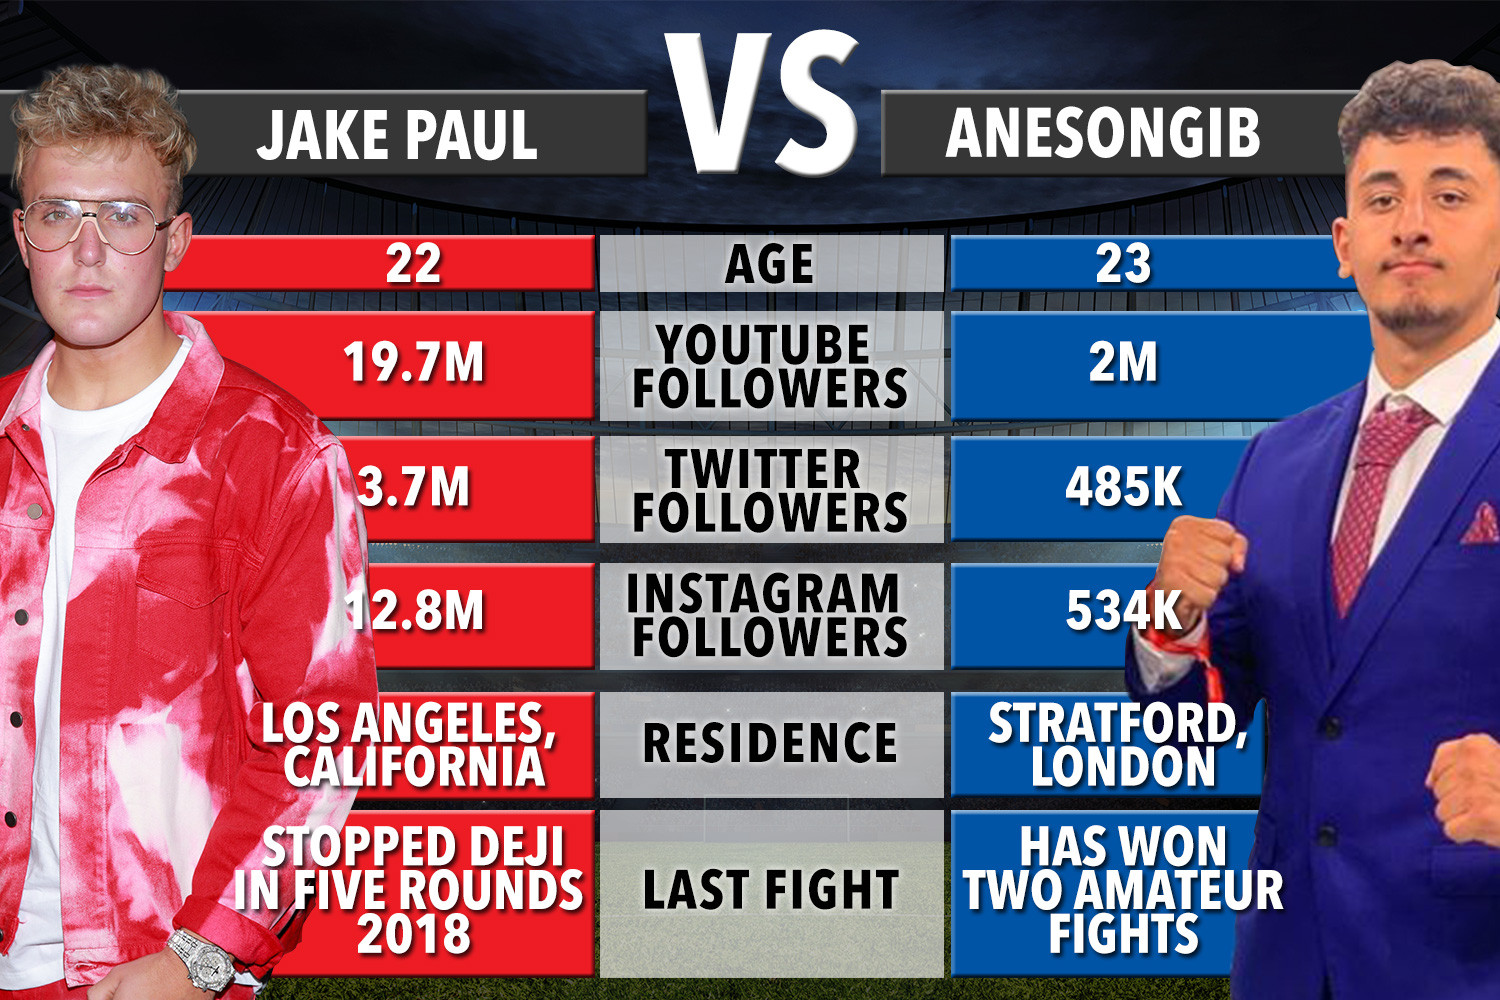 jake paul vs anesongib